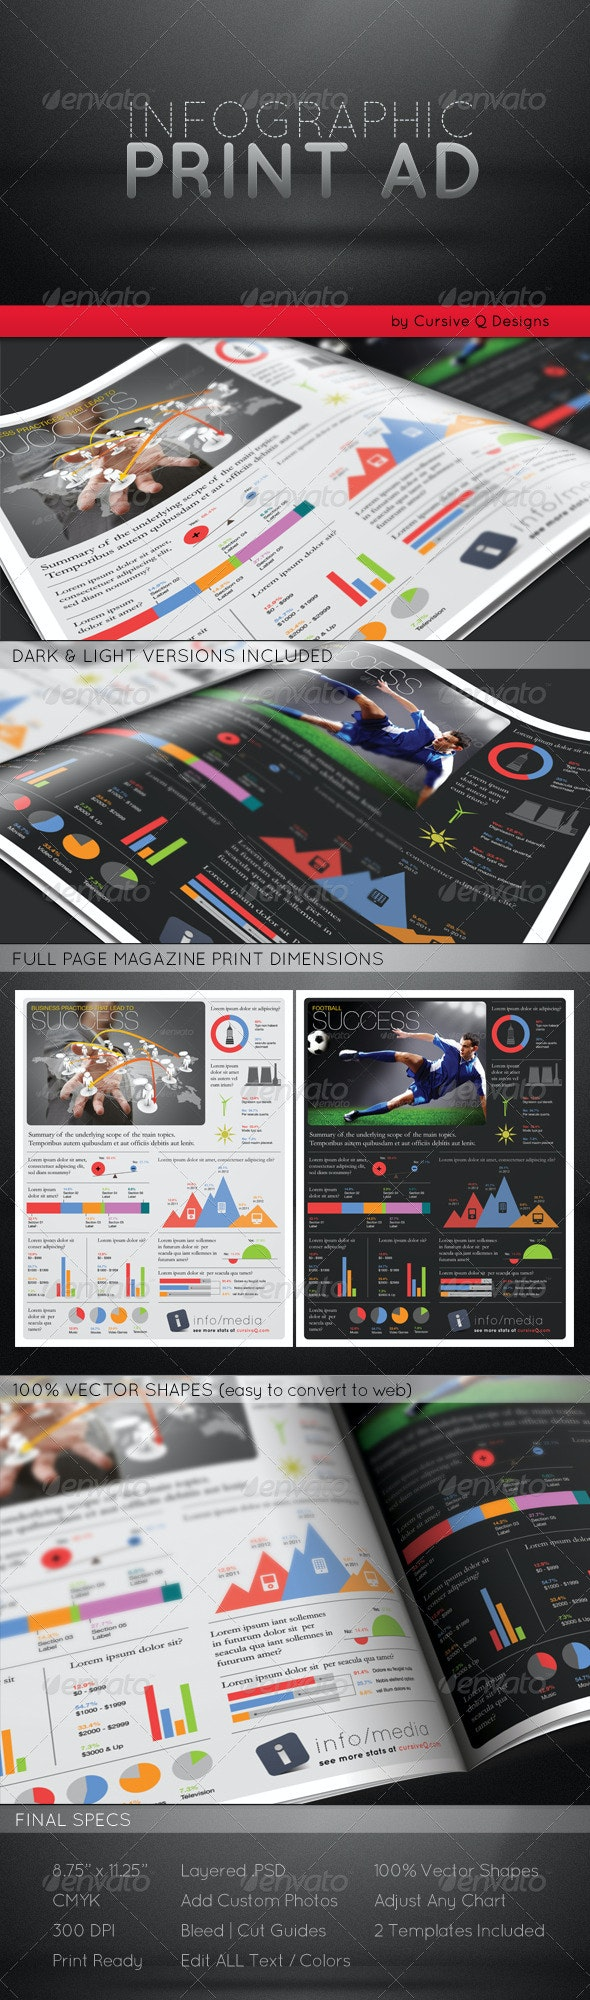 Infographic Print Ad Template - Corporate Flyers